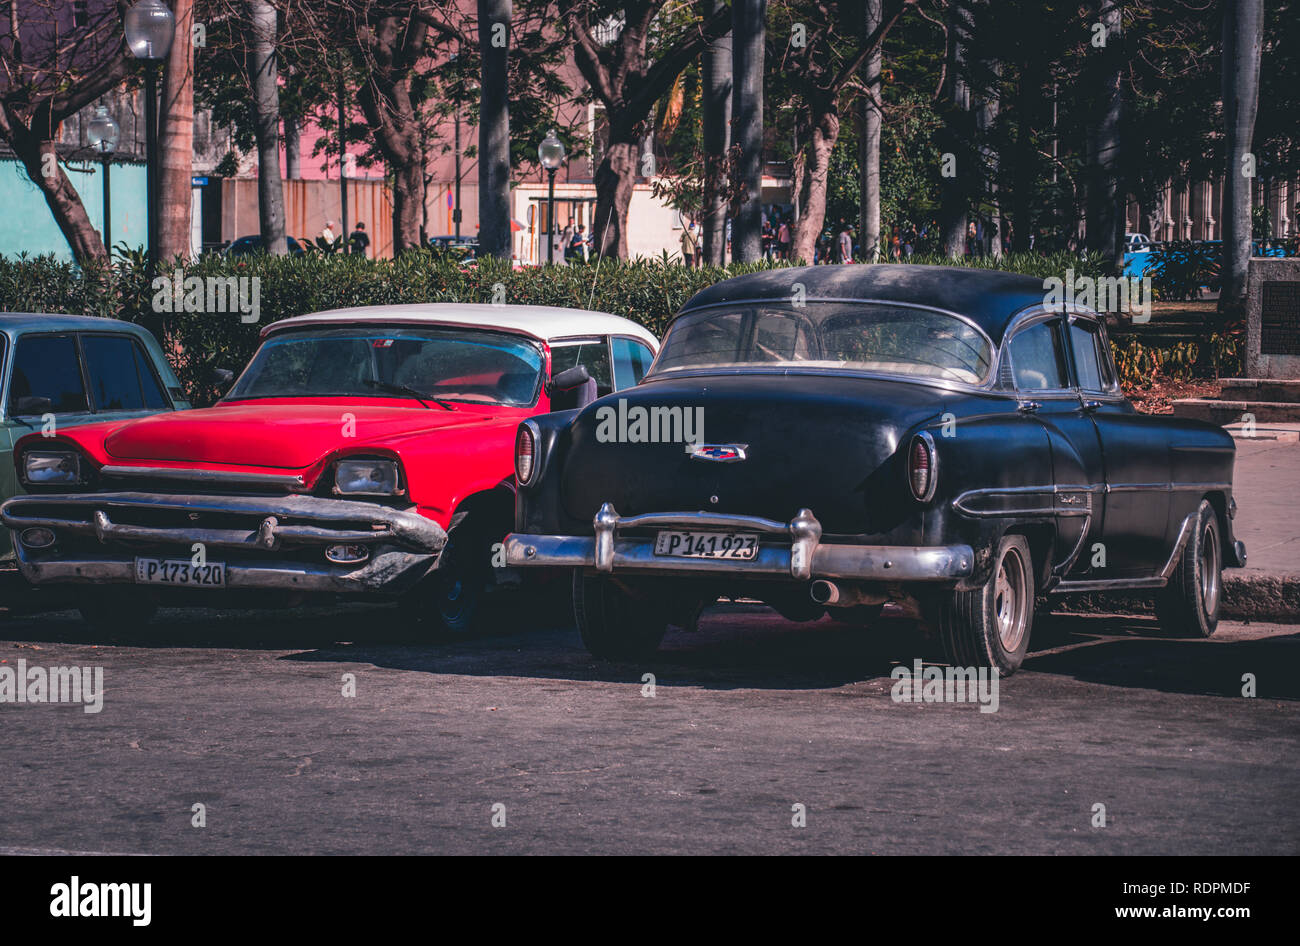 Oldtimers - Stock Image